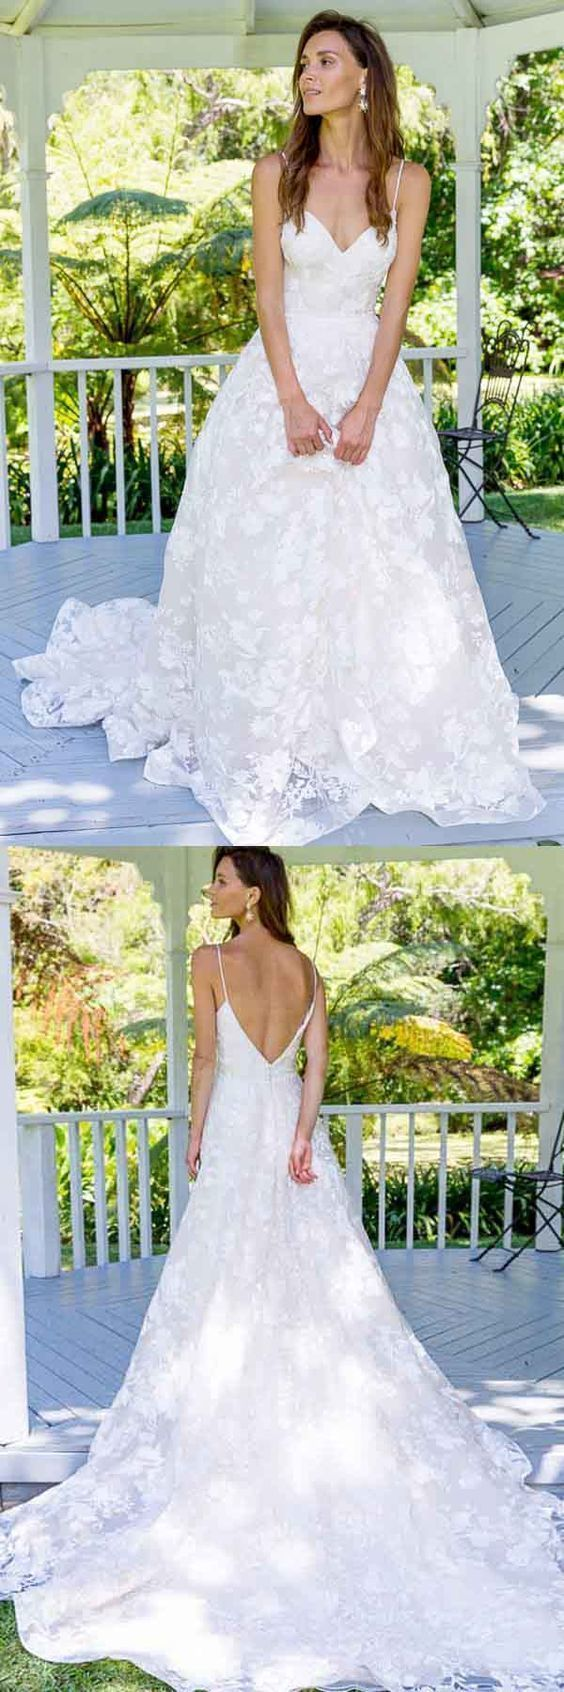 Sexy Spaghetti Straps Appliques Wedding Dress, Backless Wedding Gowns